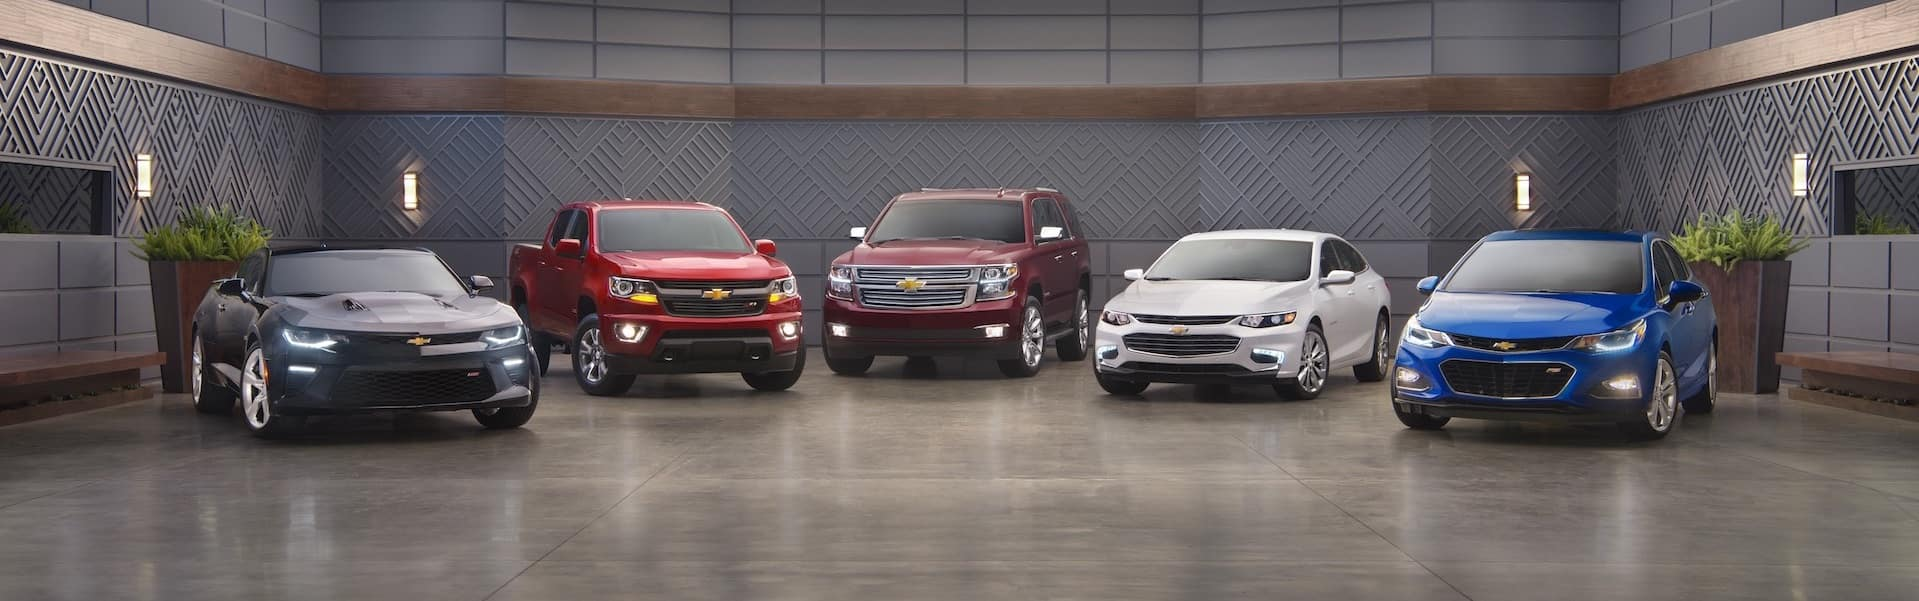 Chevrolet Model Lineup